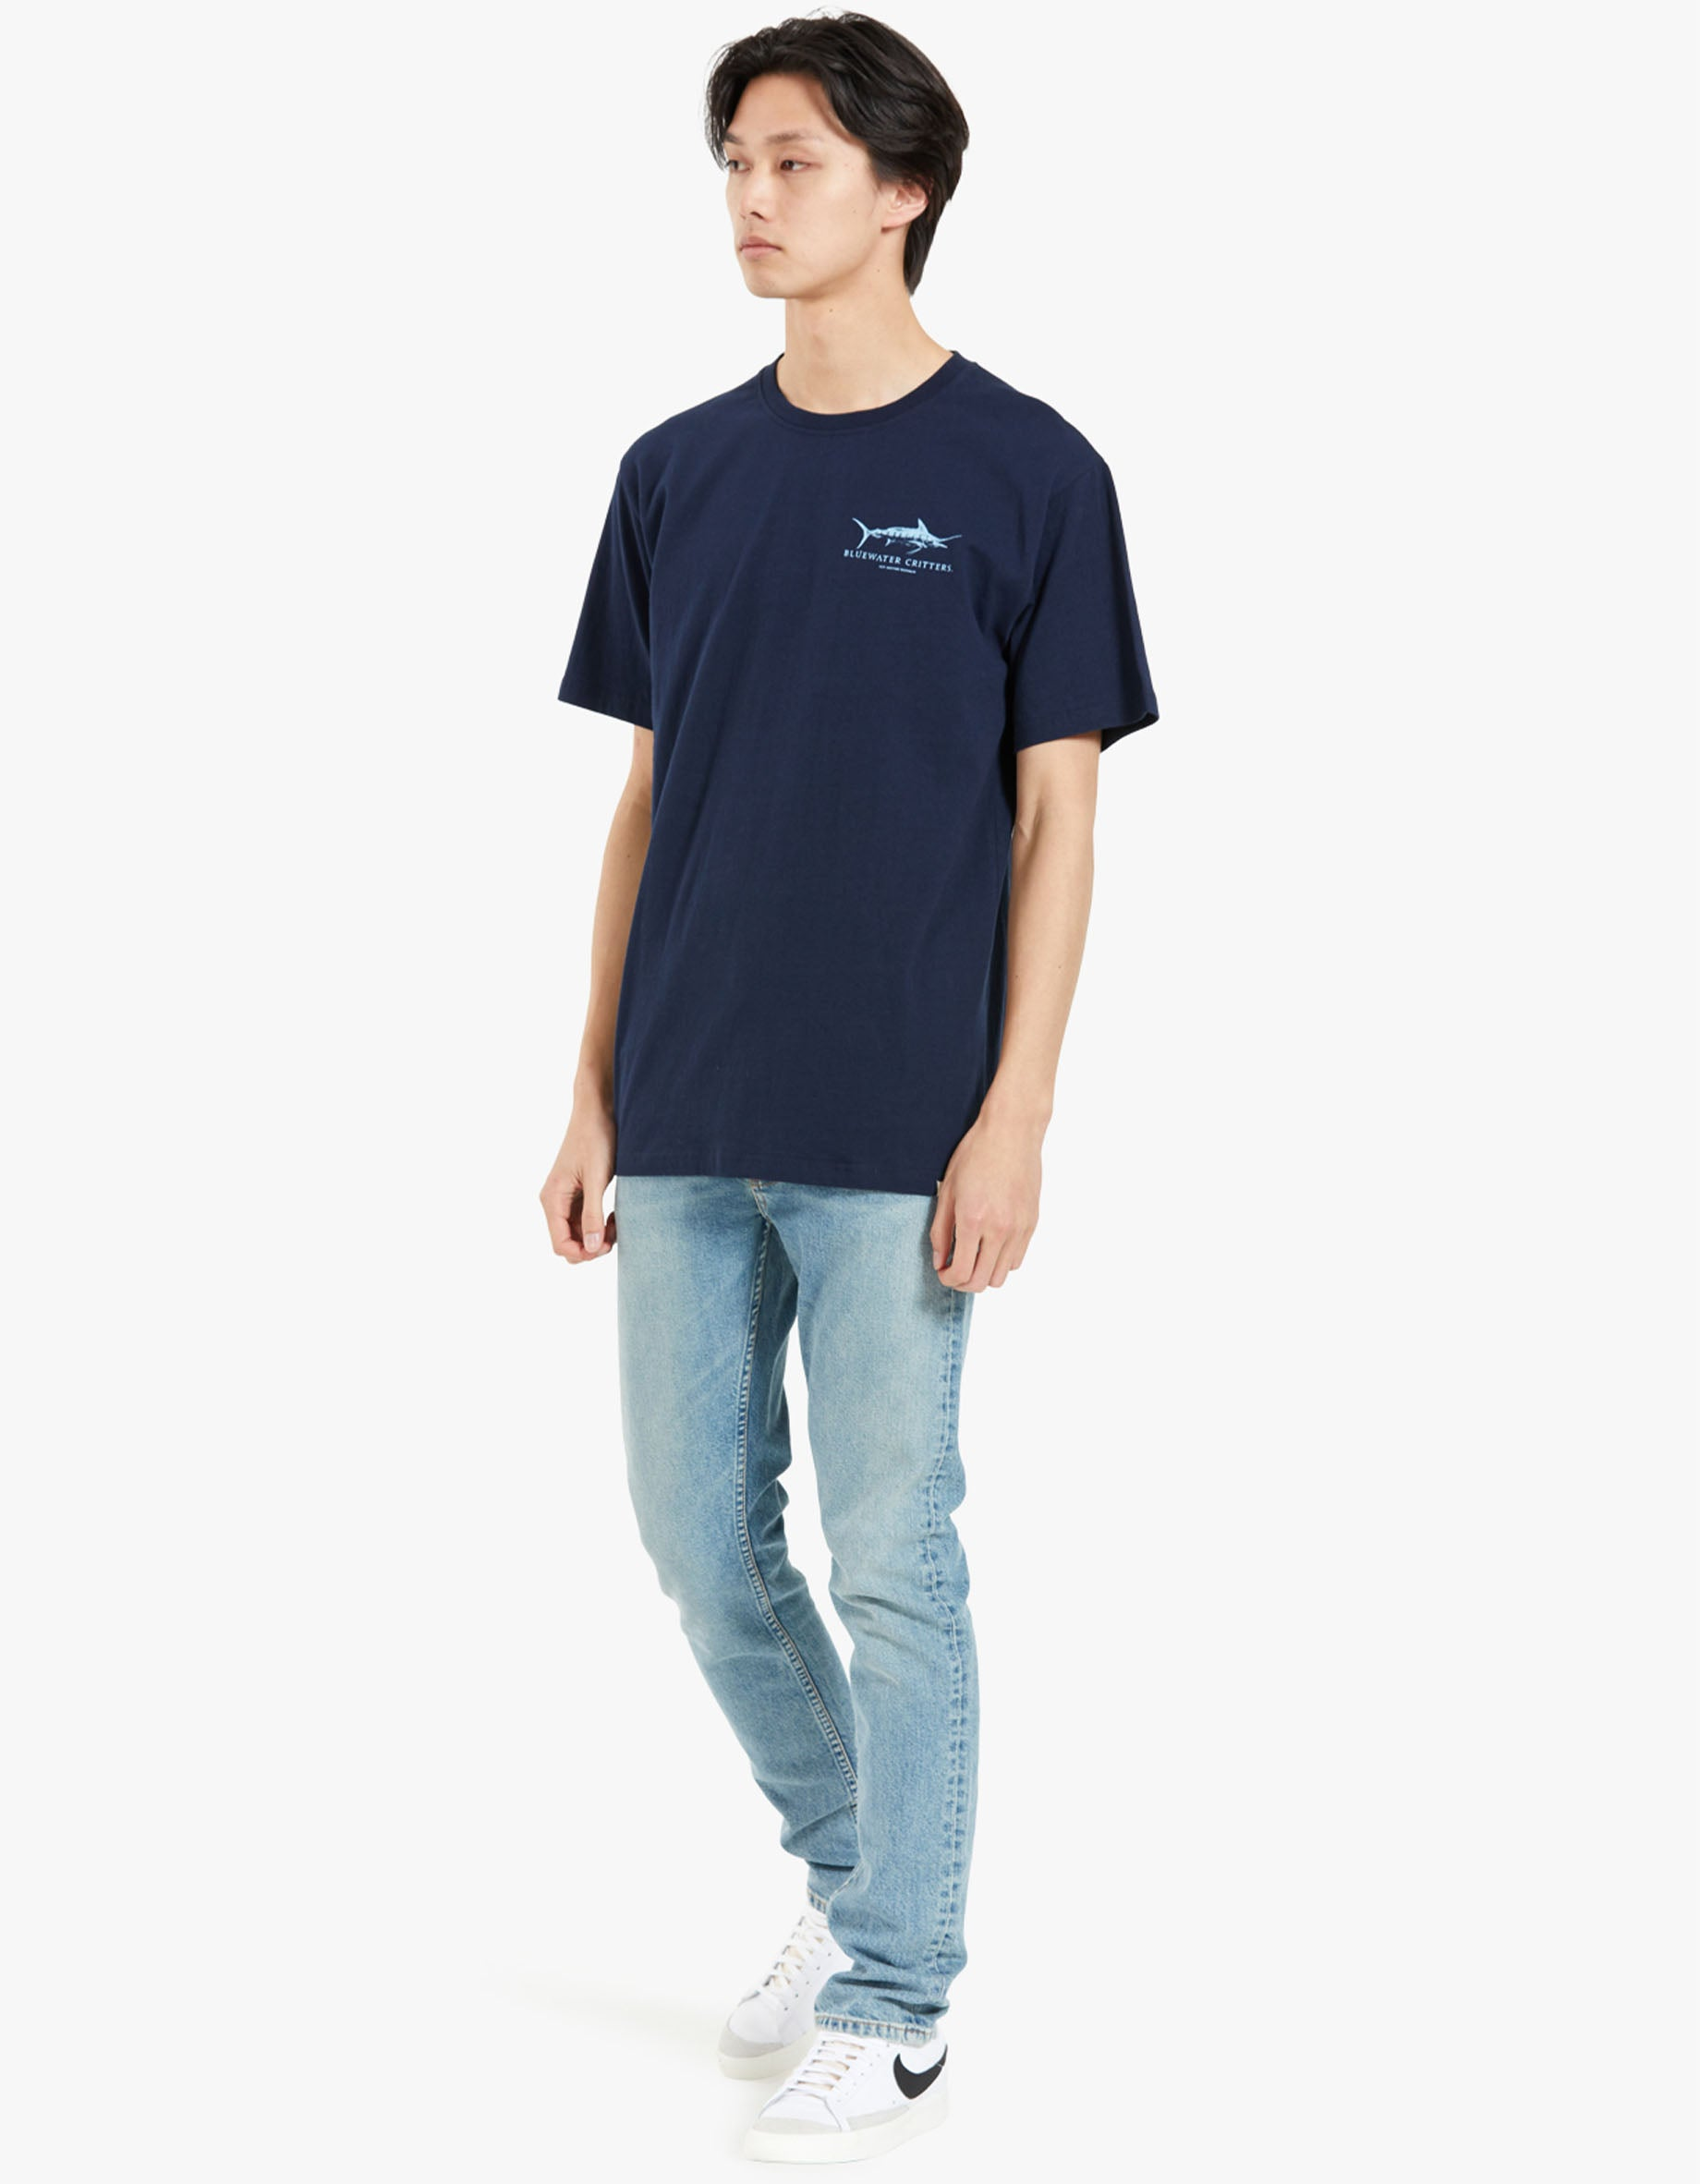 Bluewater Critters Tee - Navy